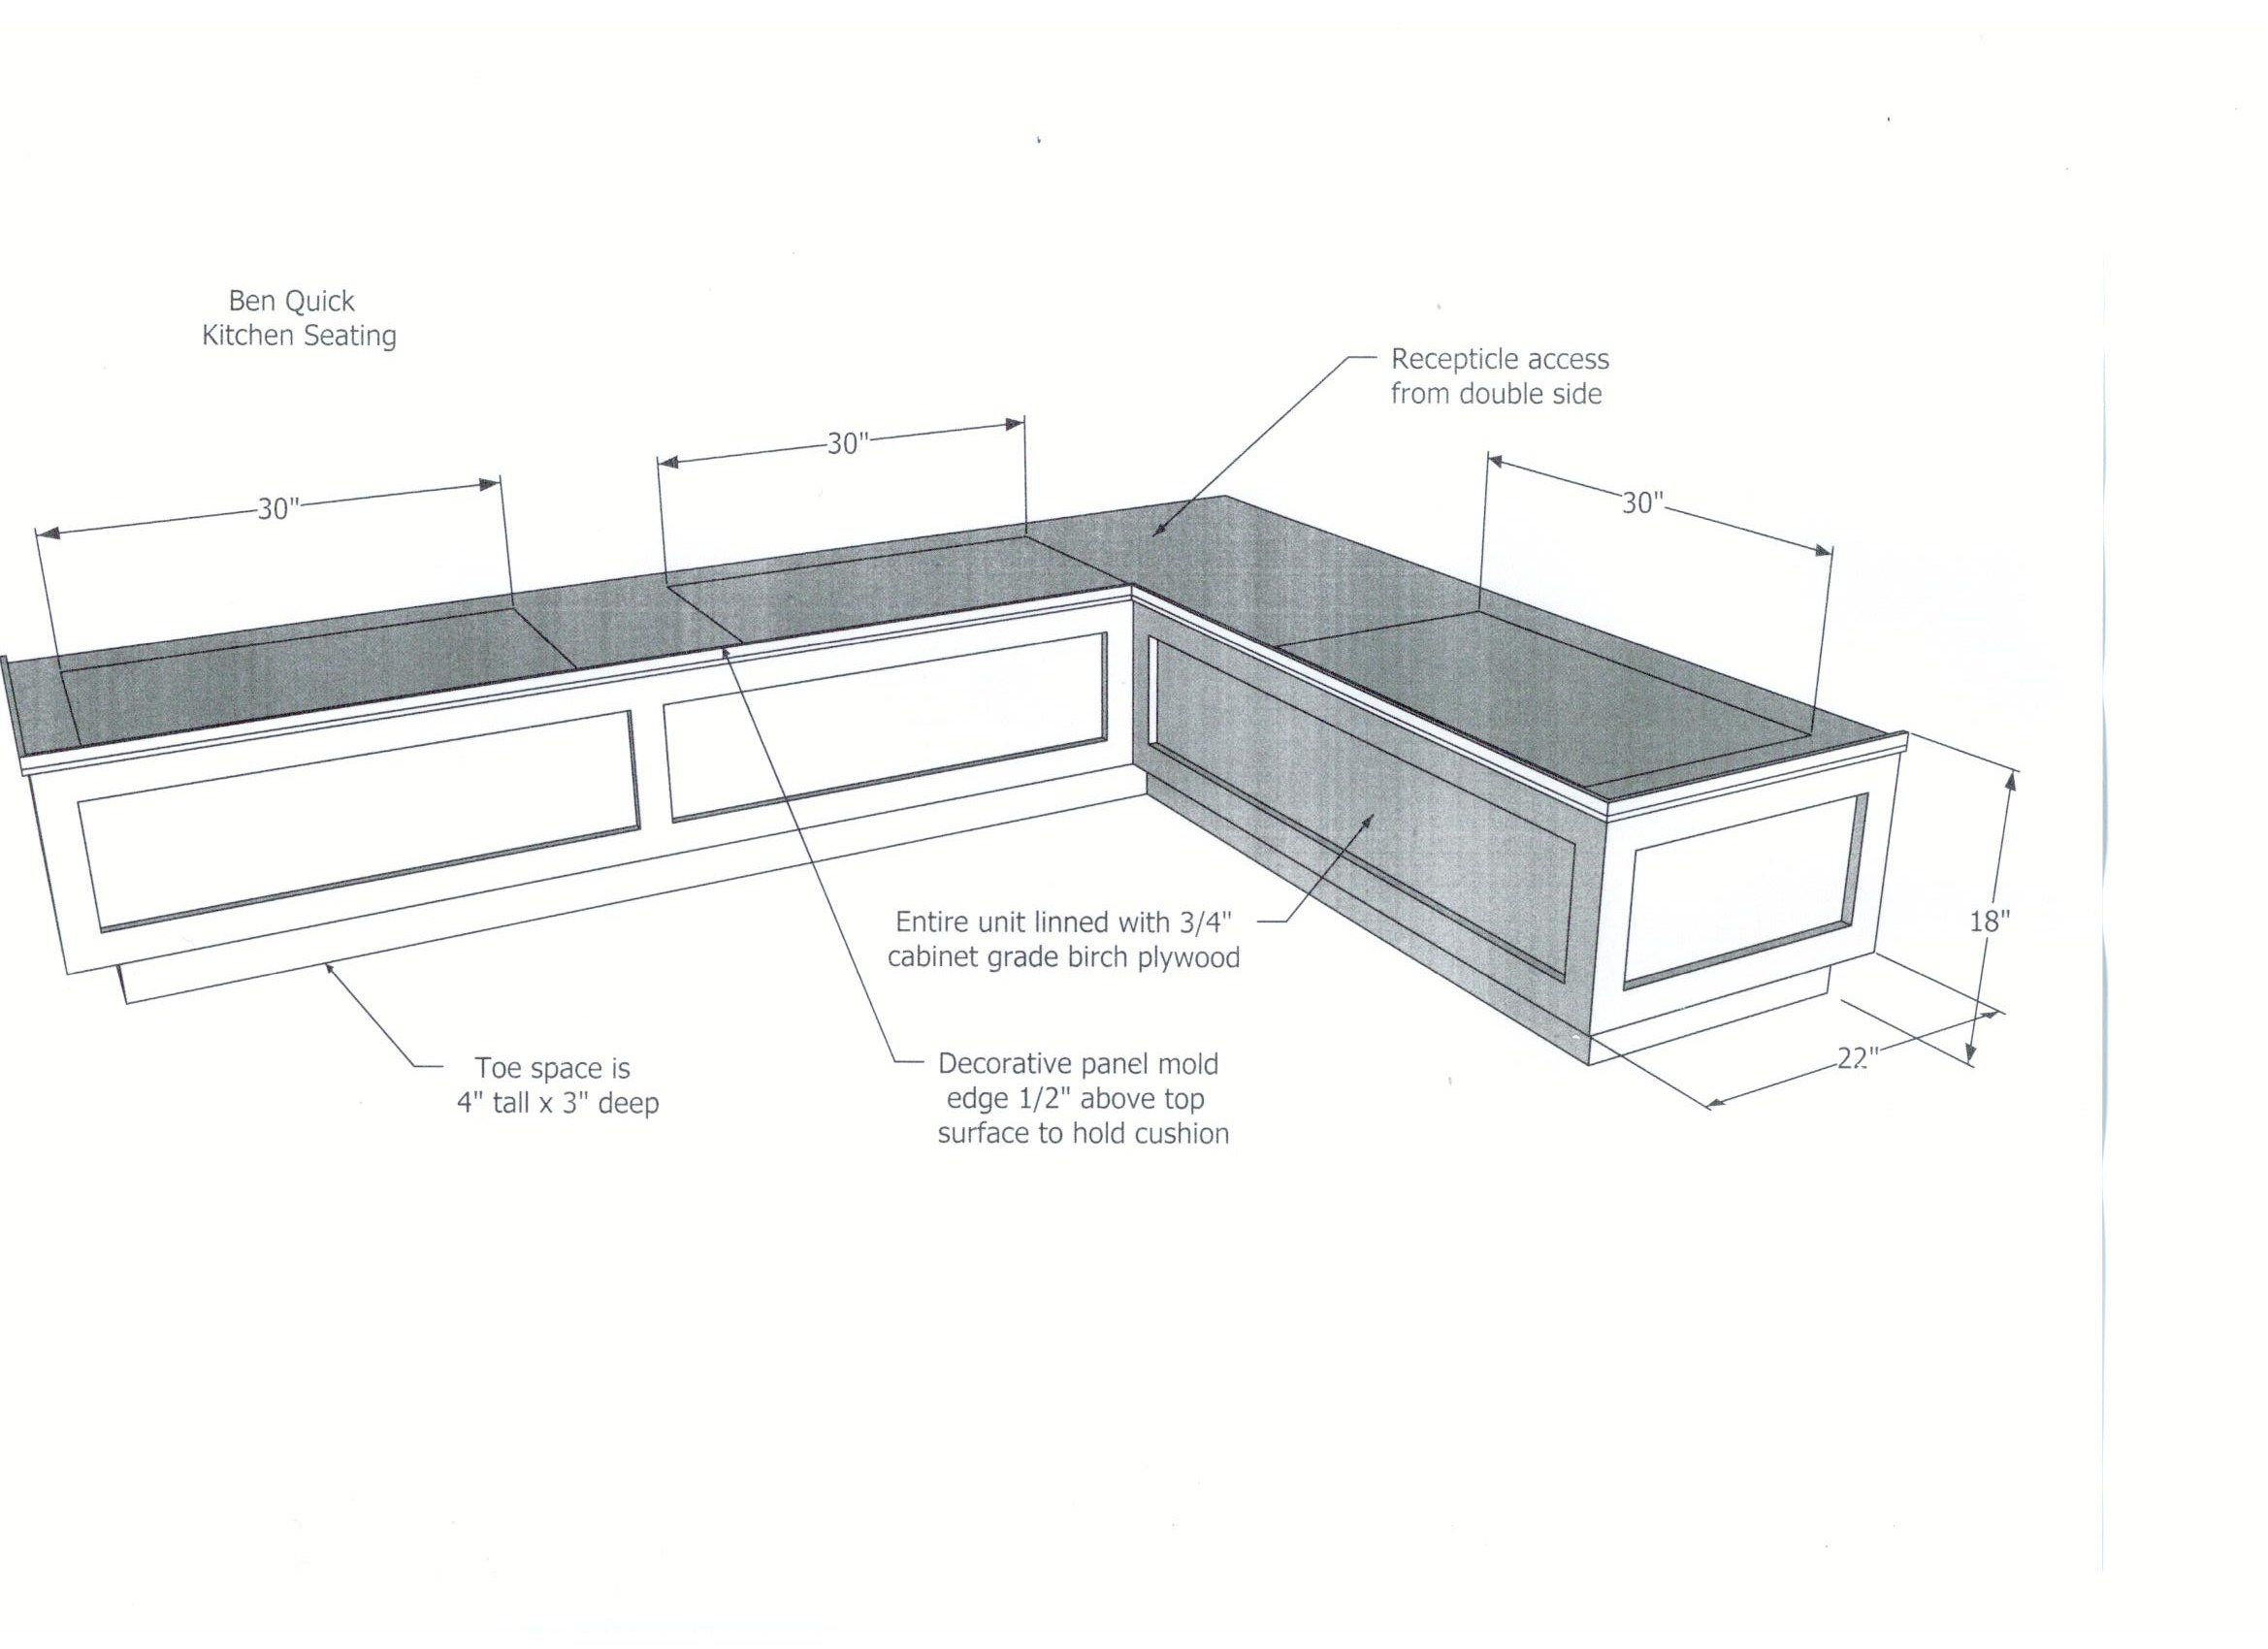 DIY-wood-breakfast-nook-bench-dimensions-plans-with